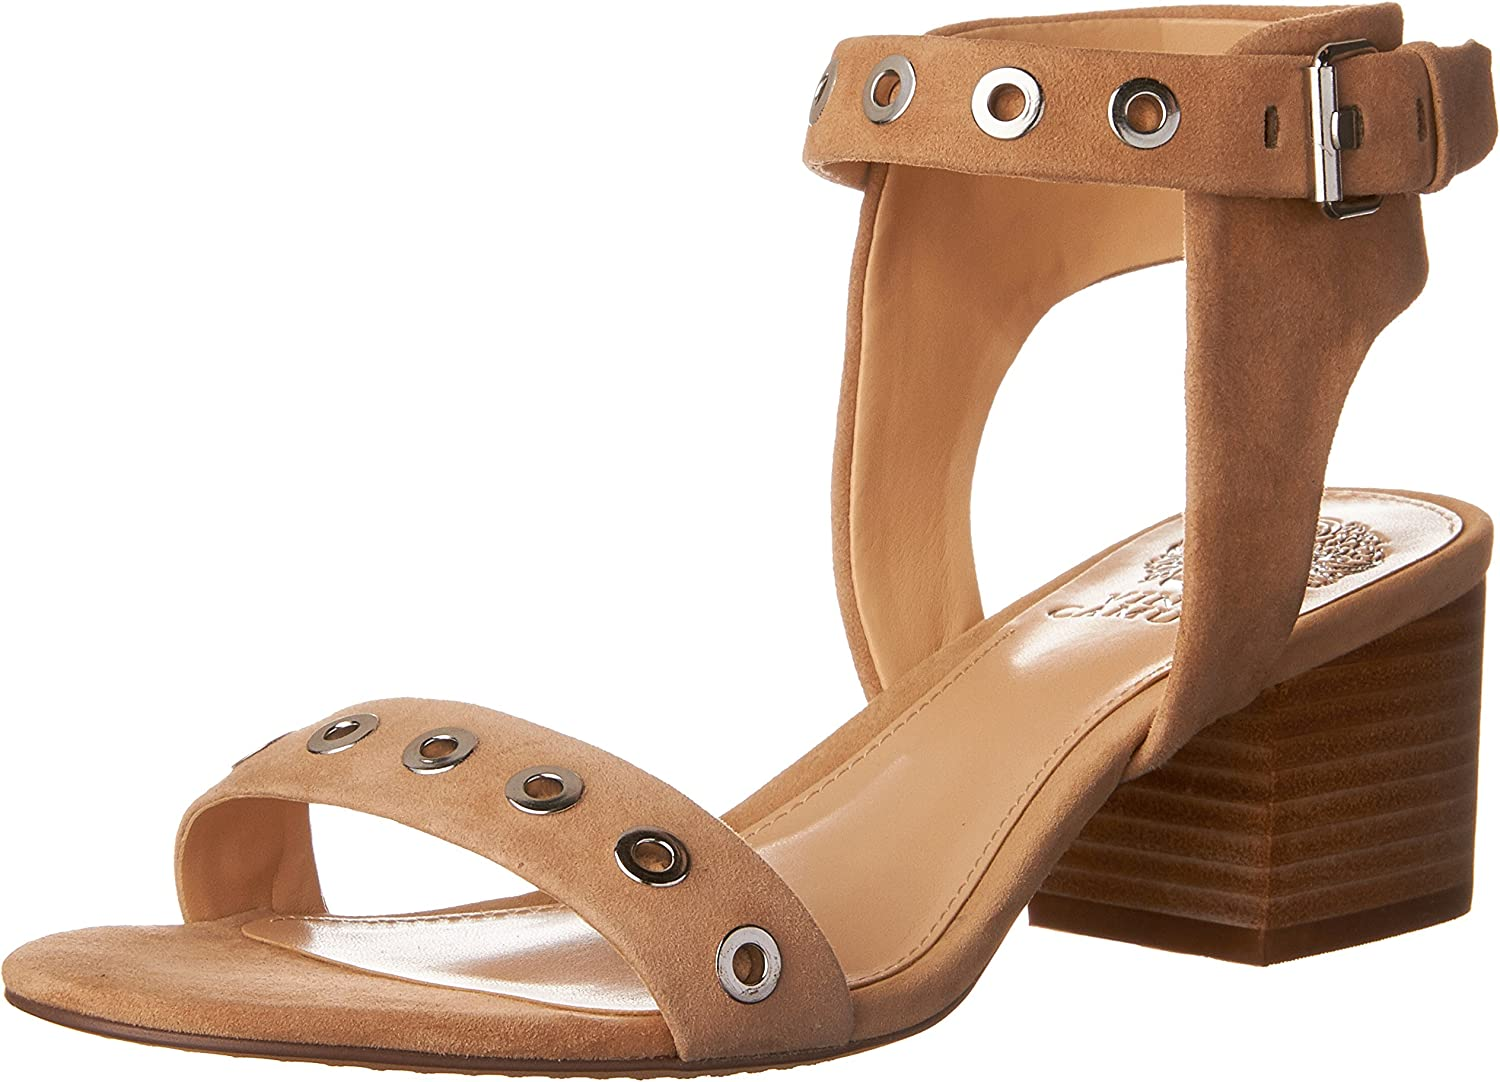 Vince Camuto Women's Feya Fashion Sandals